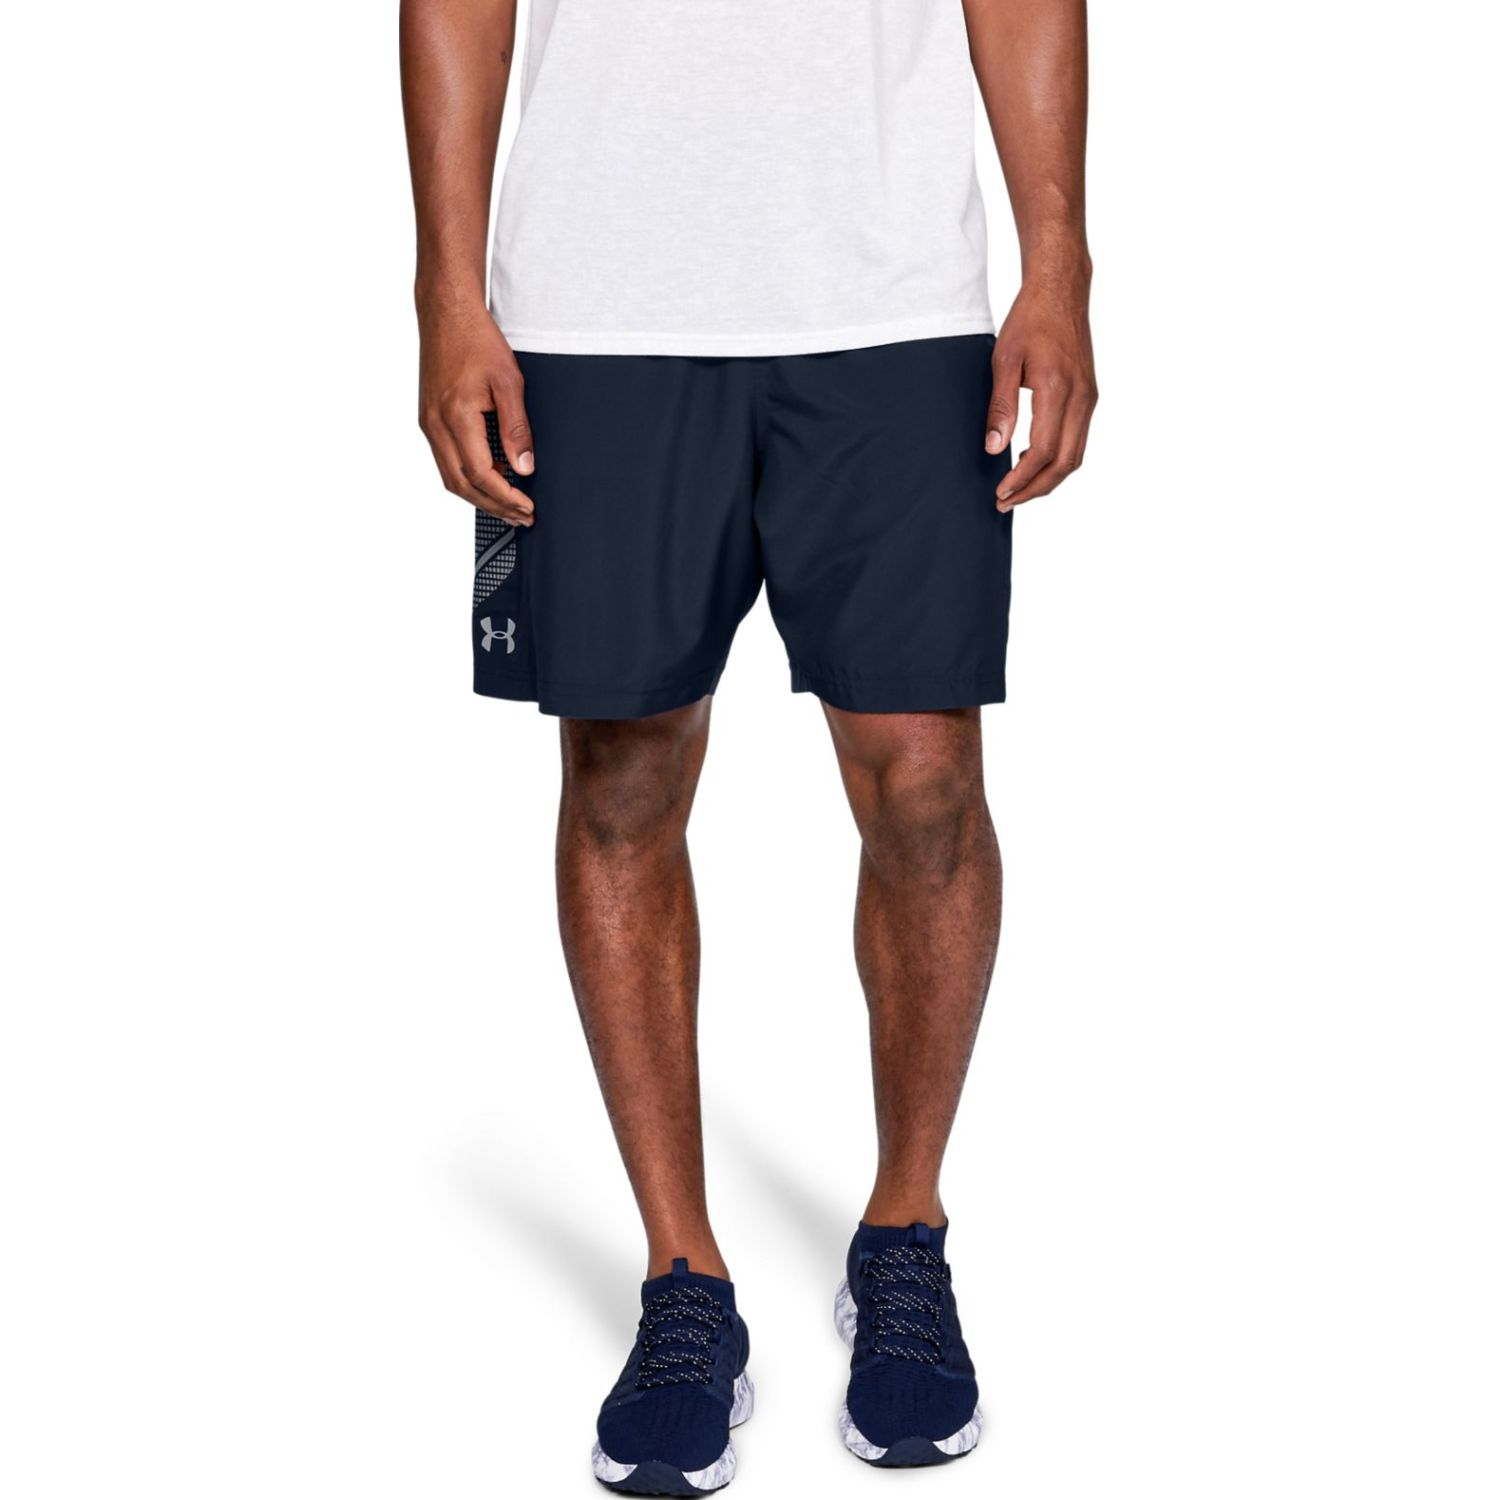 Under Armour Woven Graphic Short-NVY Navy Shorts Deportivos